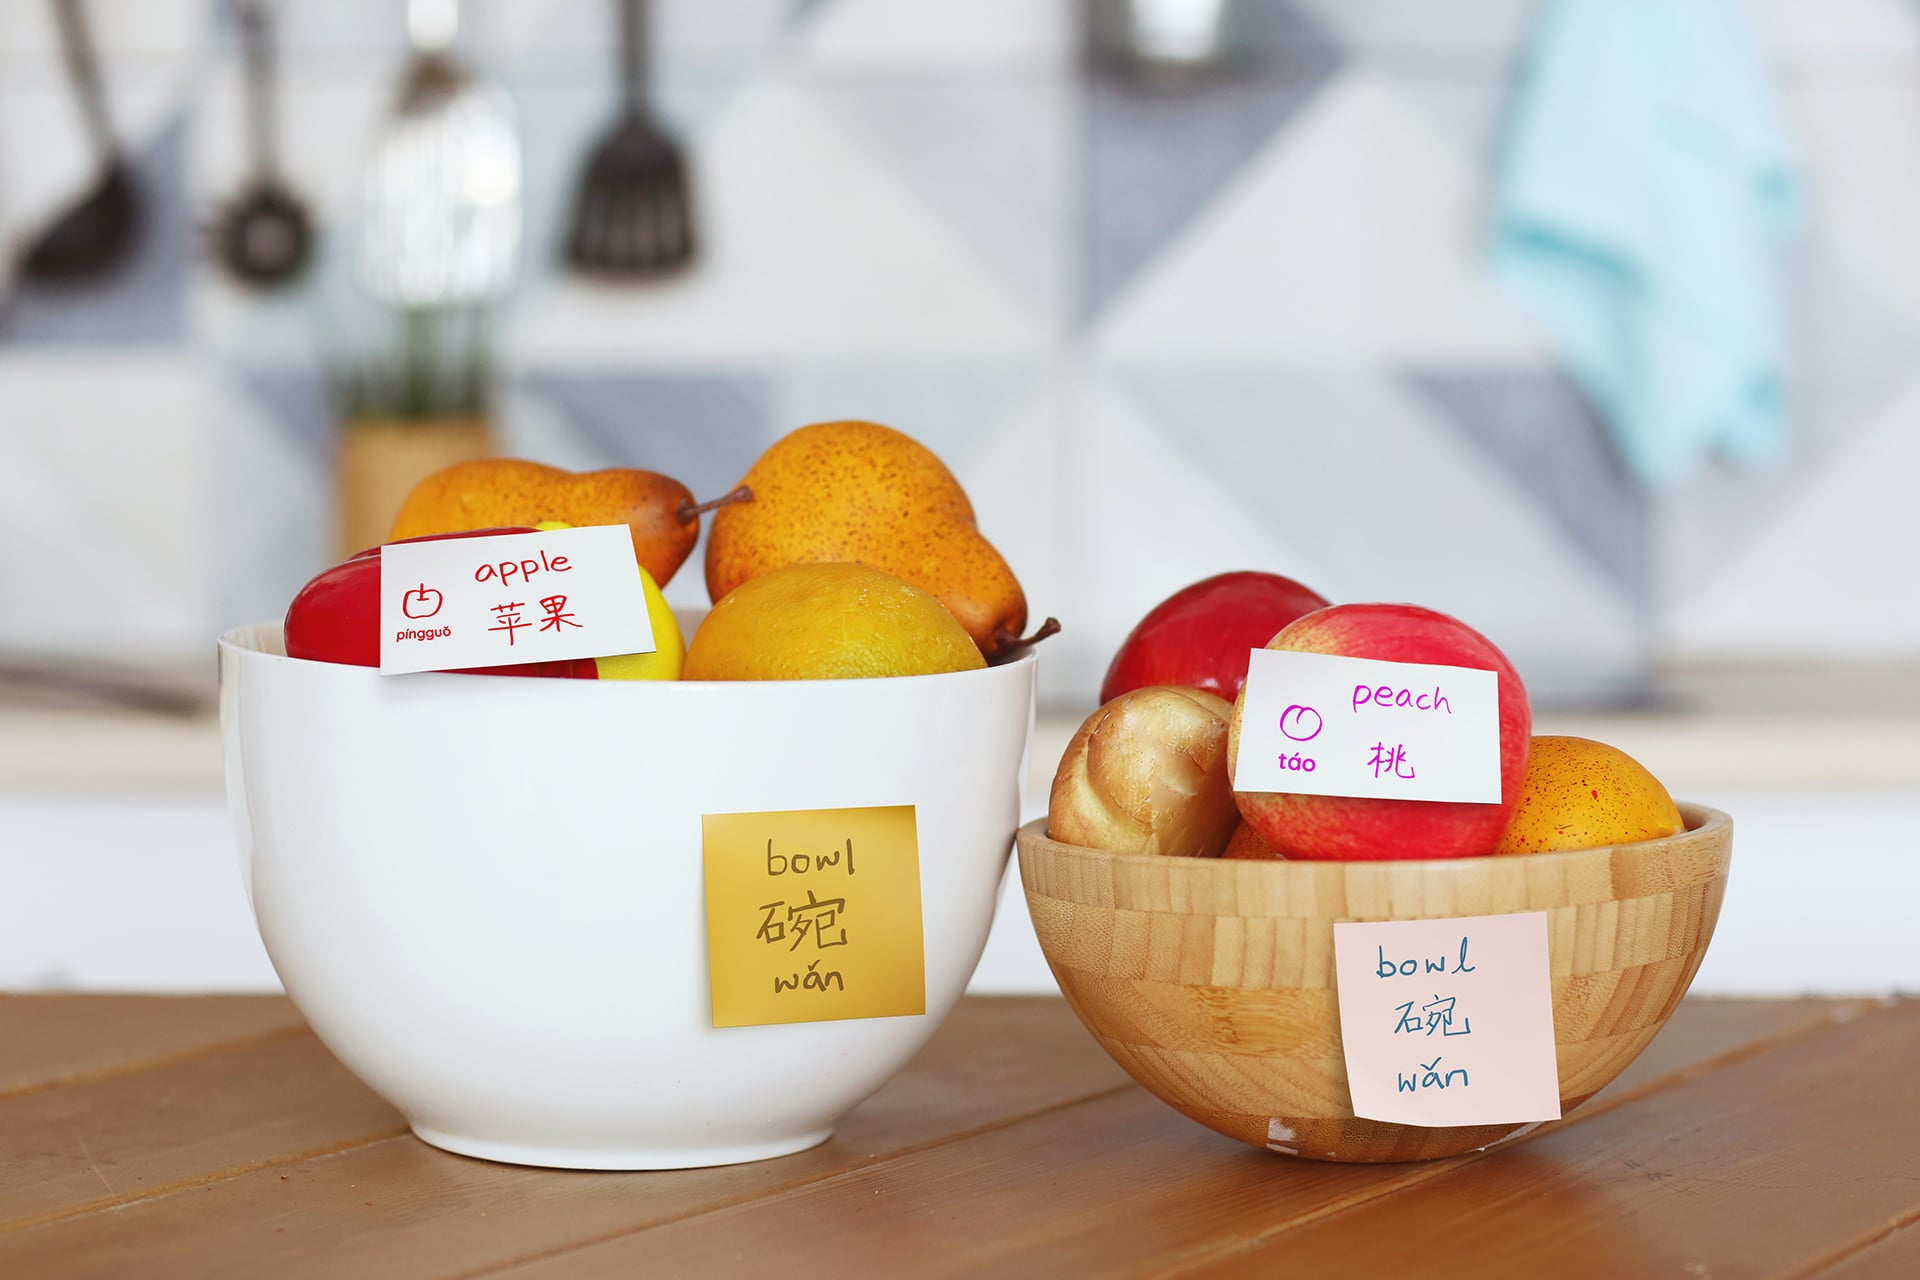 Help your kids learn Chinese through labelled items at home